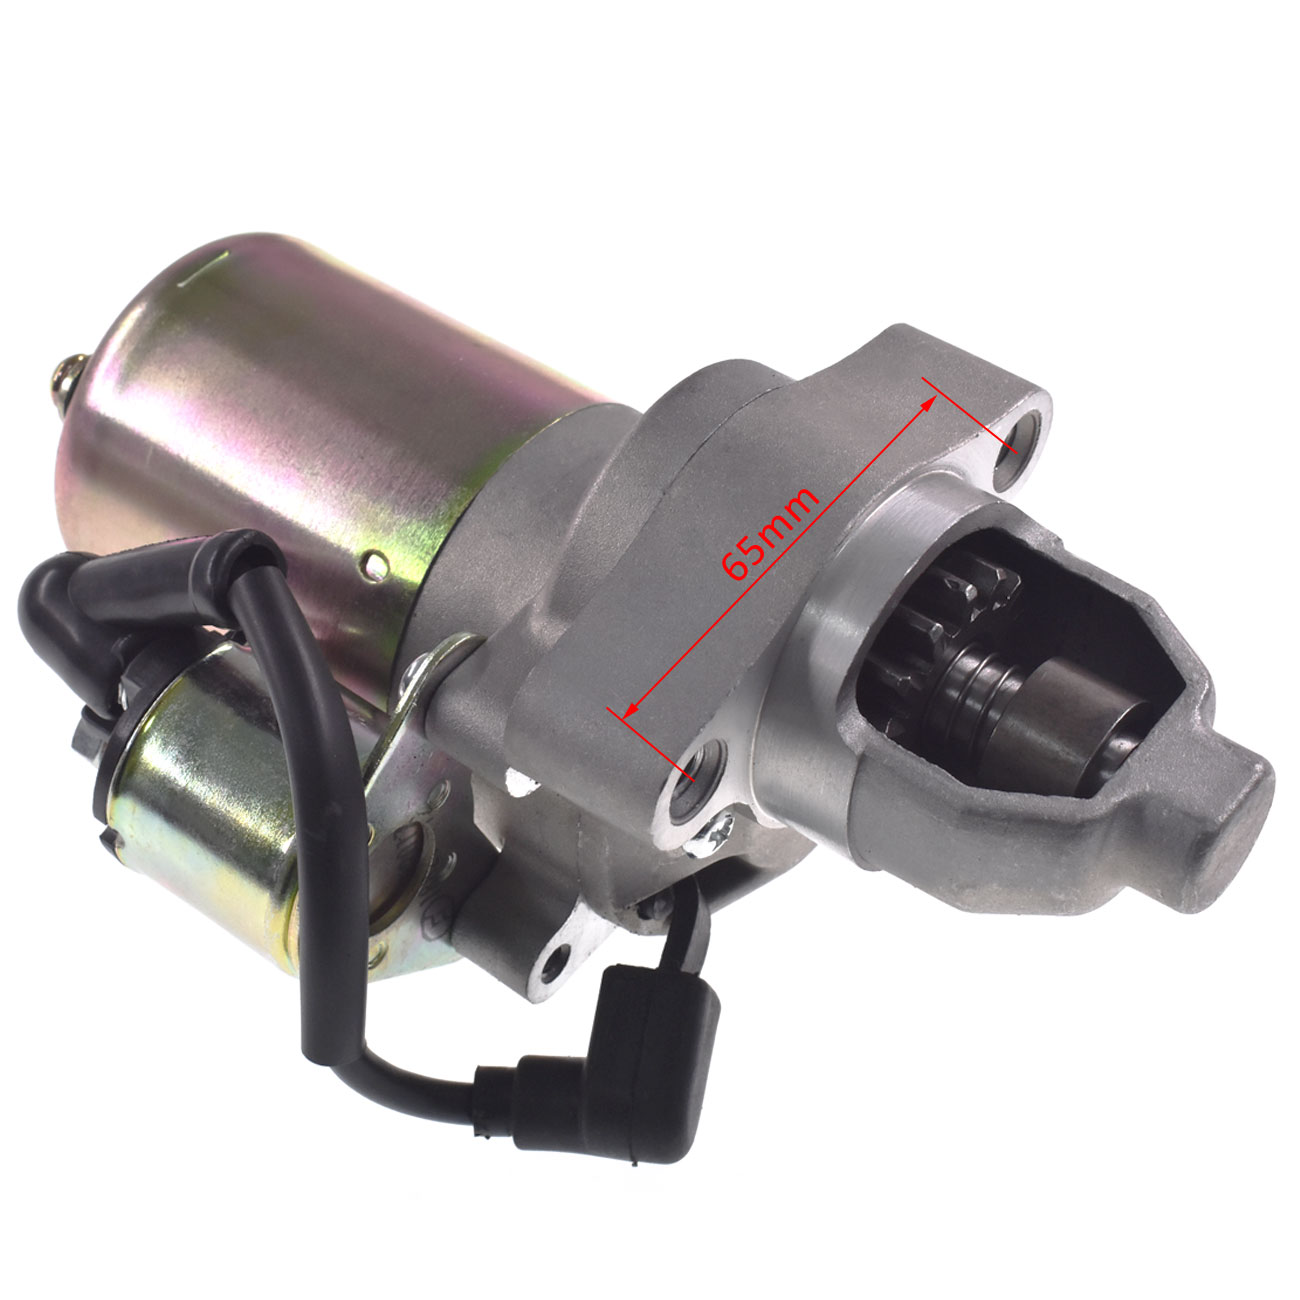 Tools : New Starter Motor With Solenoid For Honda 8HP  amp  9HP GX240 GX270